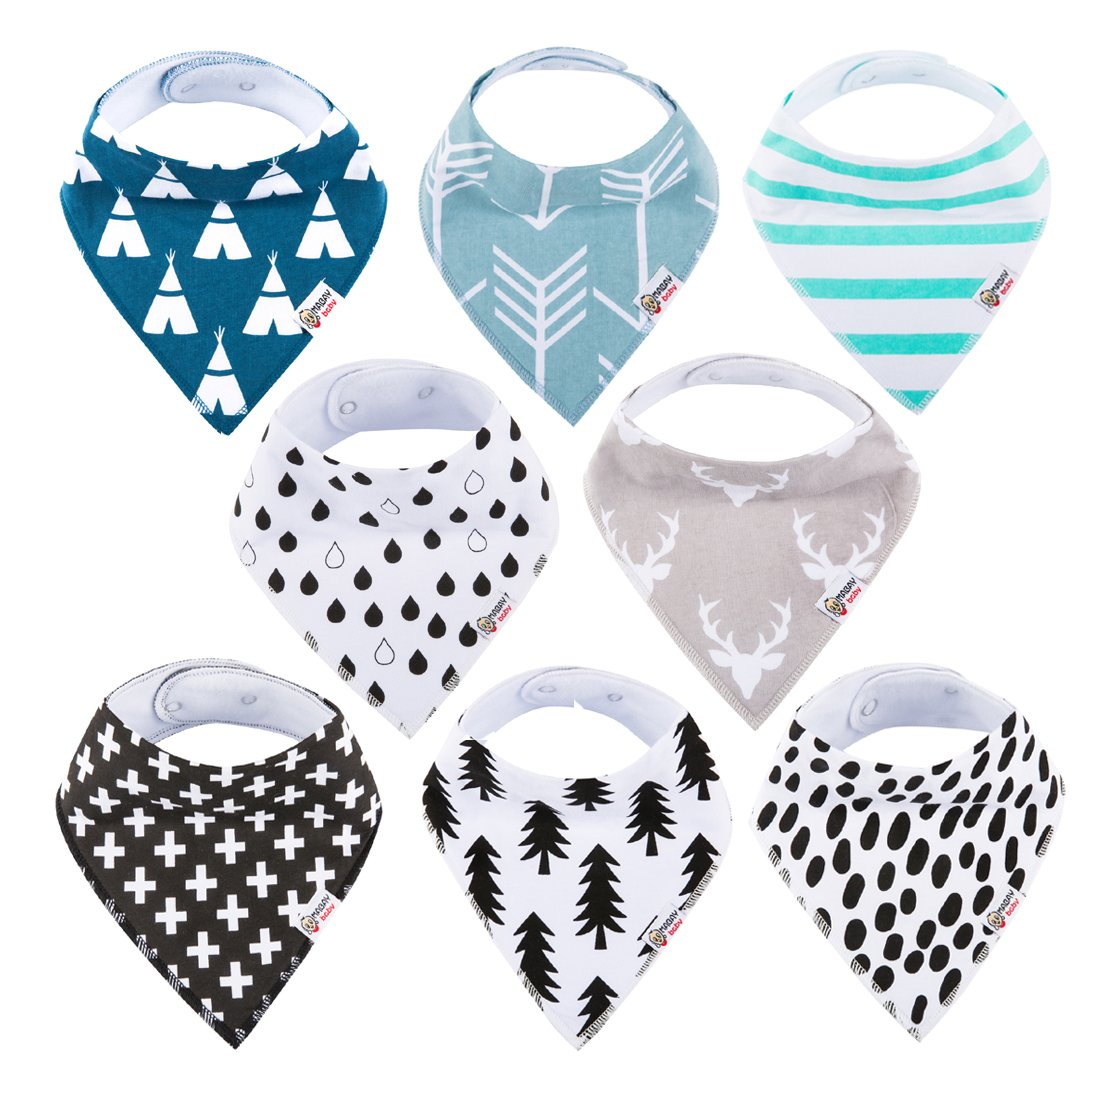 Baby Bandana Drool Bibs Organic 8 Pack for Boys and Girls 100% Absorbent Soft Cotton Bandana Baby Bibs for Teething Feeding Baby Shower Gift (BC073) MABAY baby